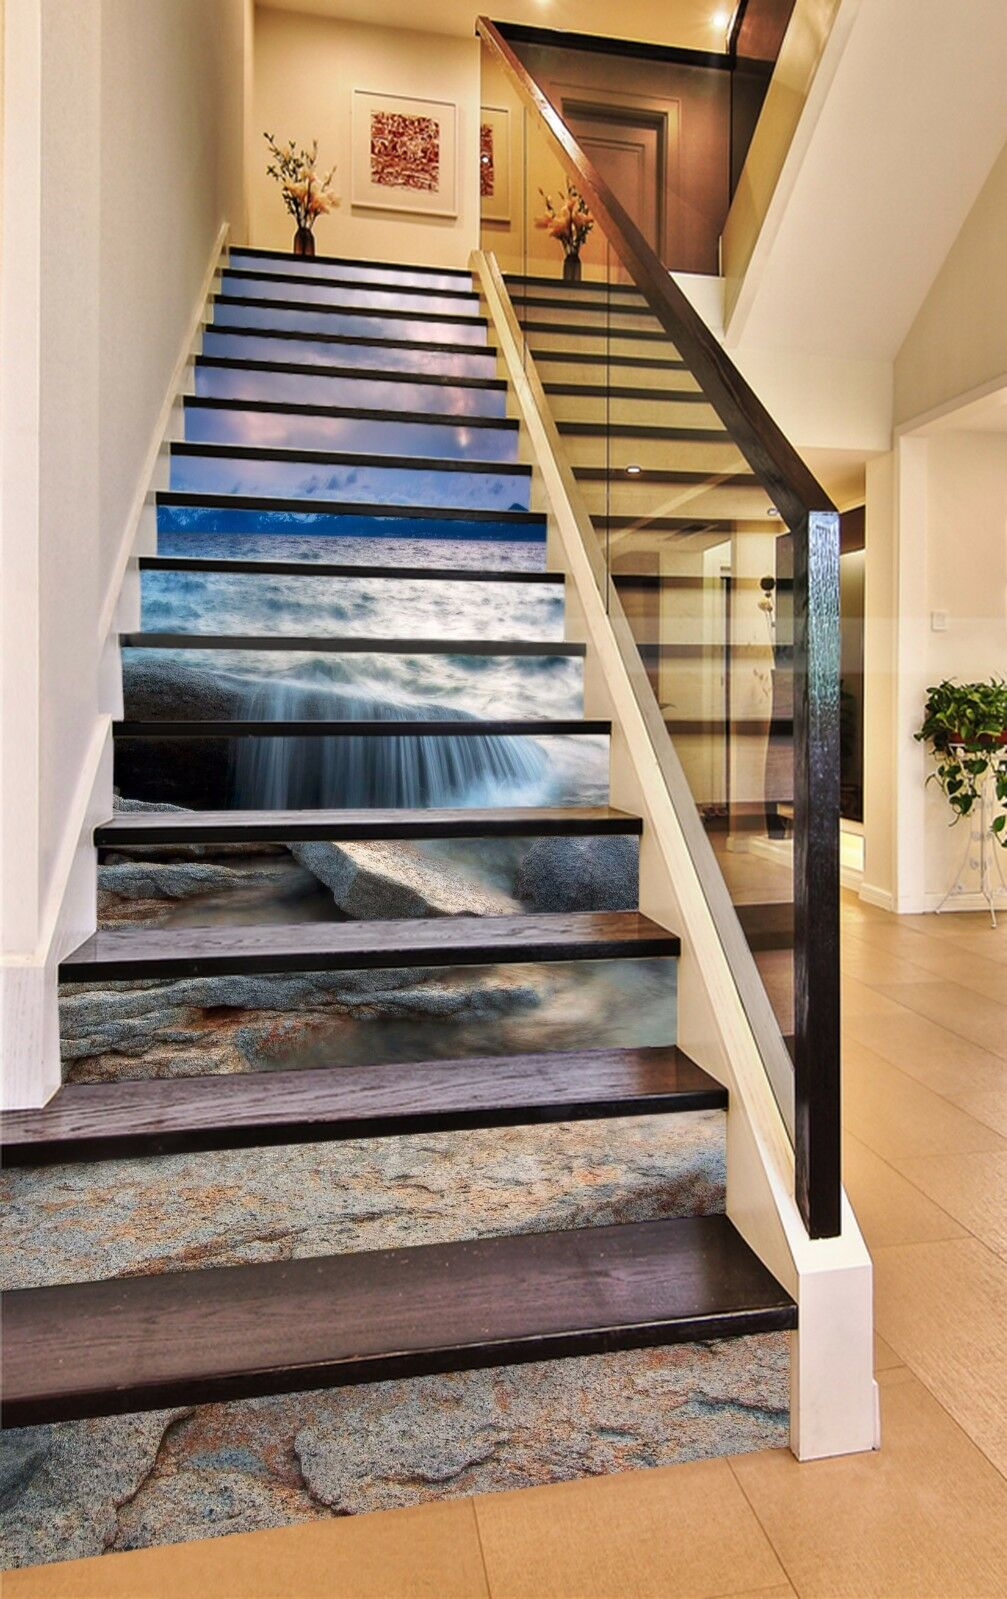 3D Bay Scenery 871 Stair Risers Decoration Photo Mural Vinyl Decal Wallpaper AU